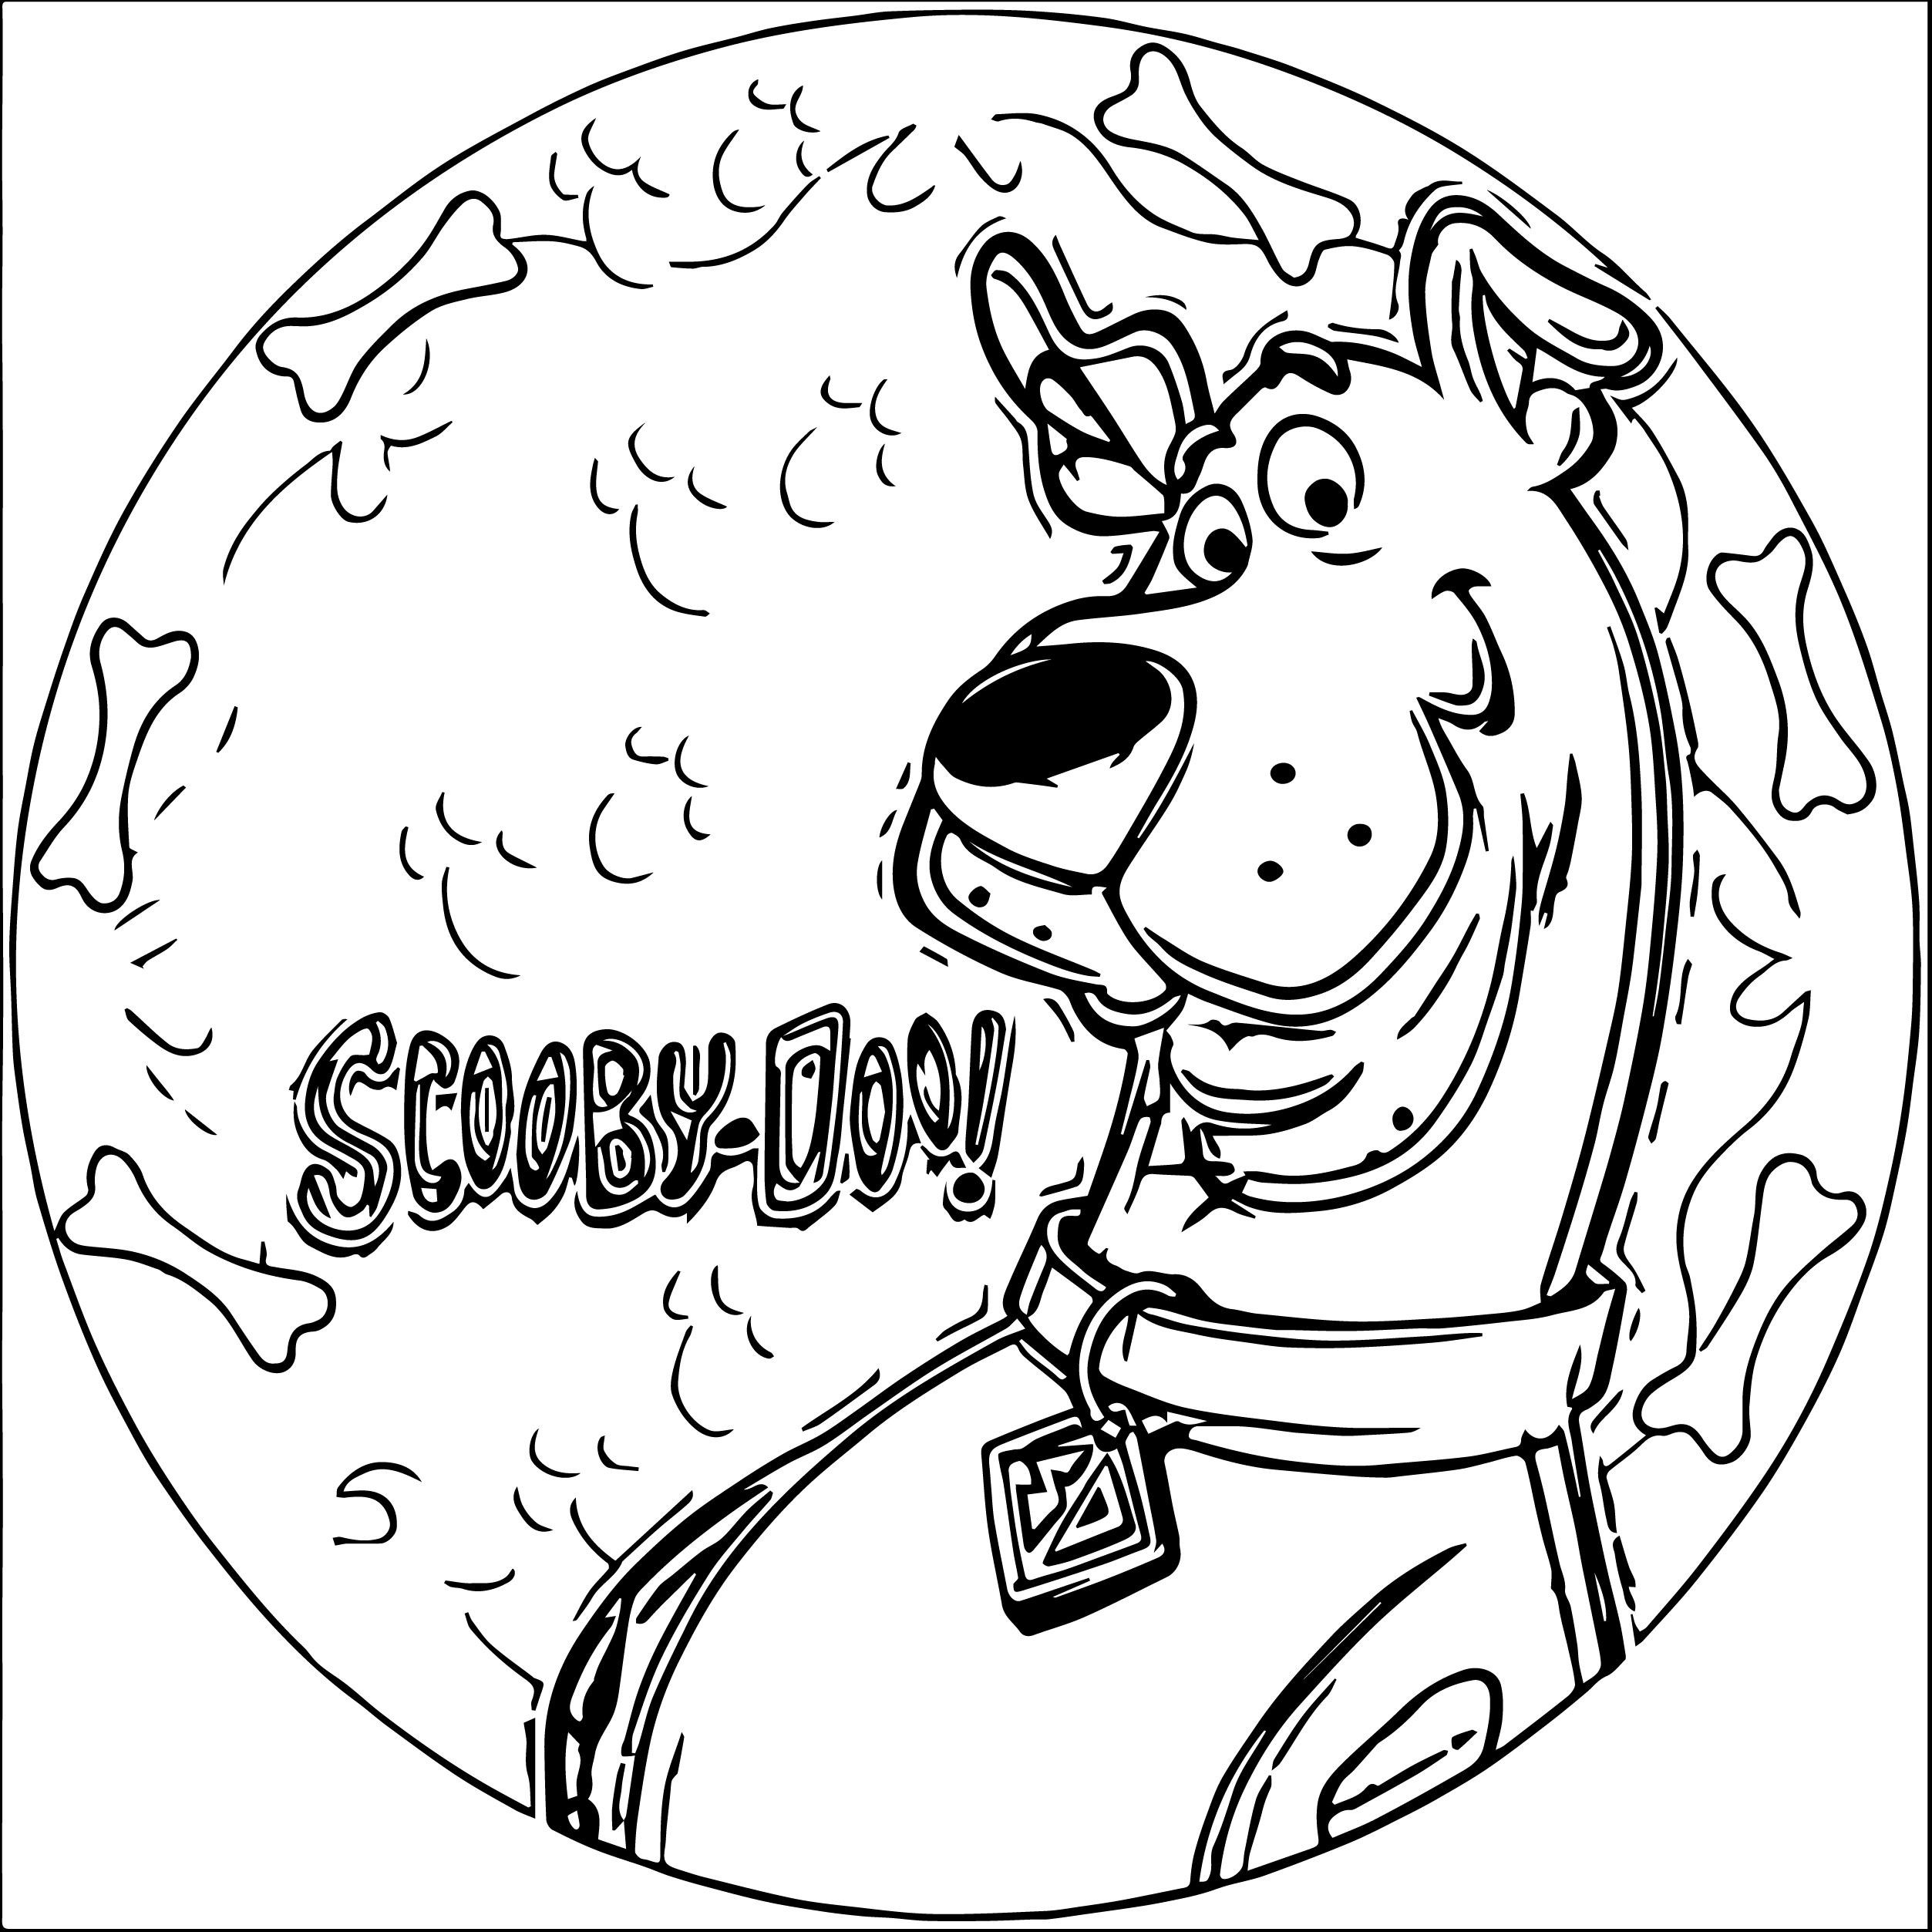 Coloring Pages For Boys Scooby Doo  Scooby Doo Coloring Pages Coloring